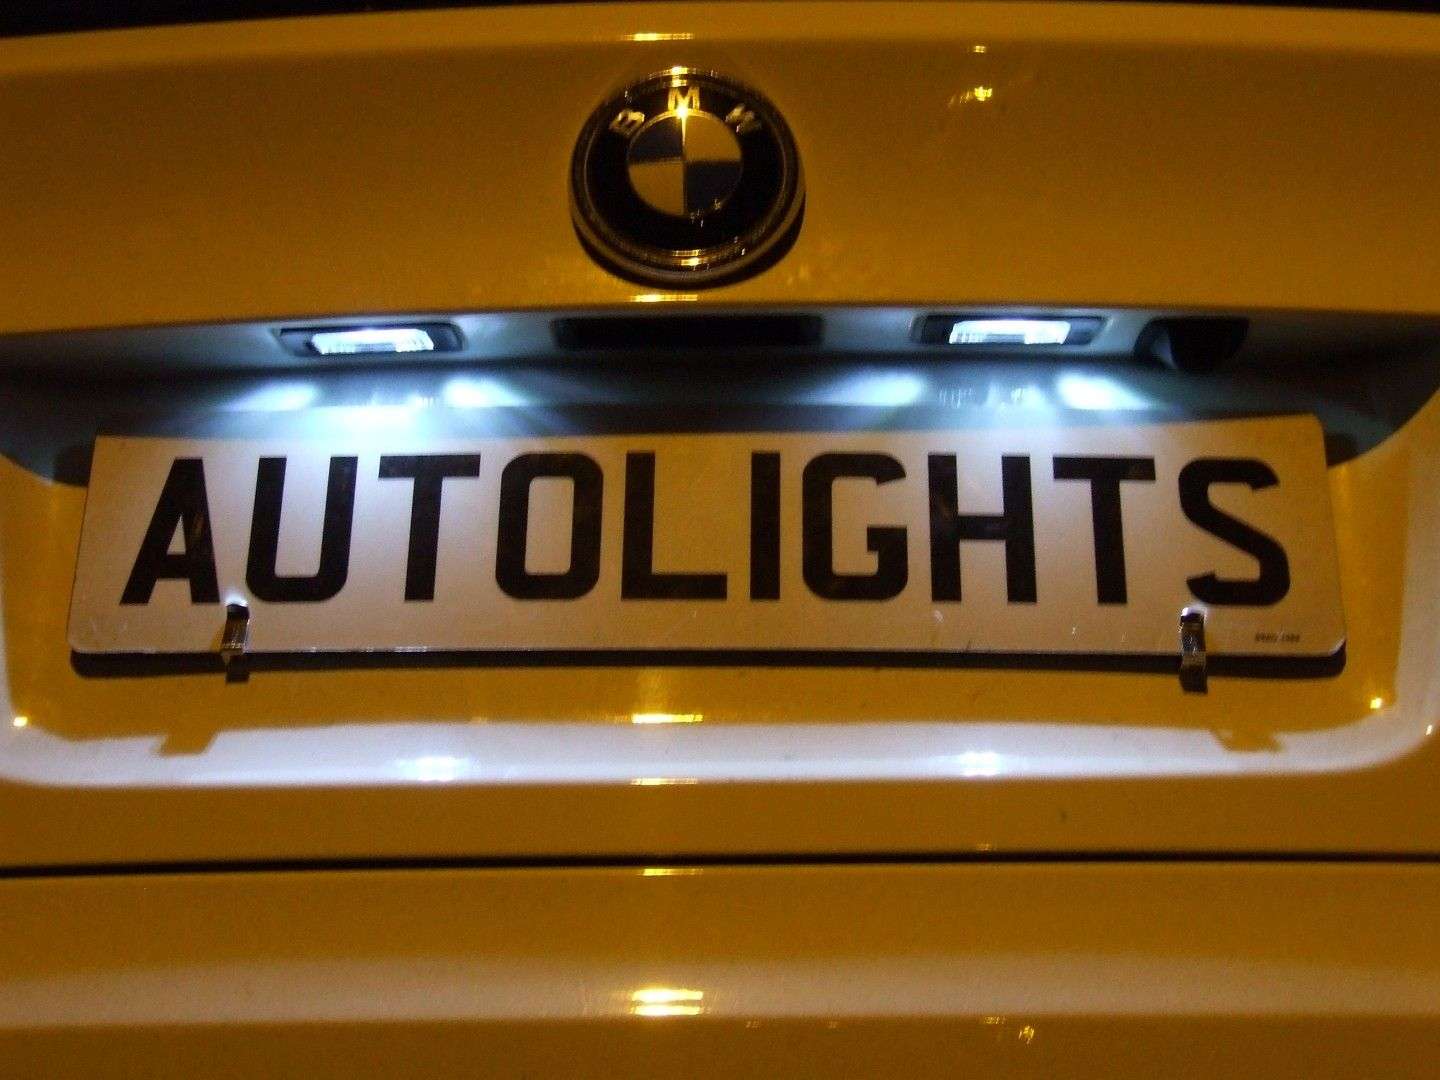 Number plate LED Car light | Cars at Night | Pinterest | Number ...